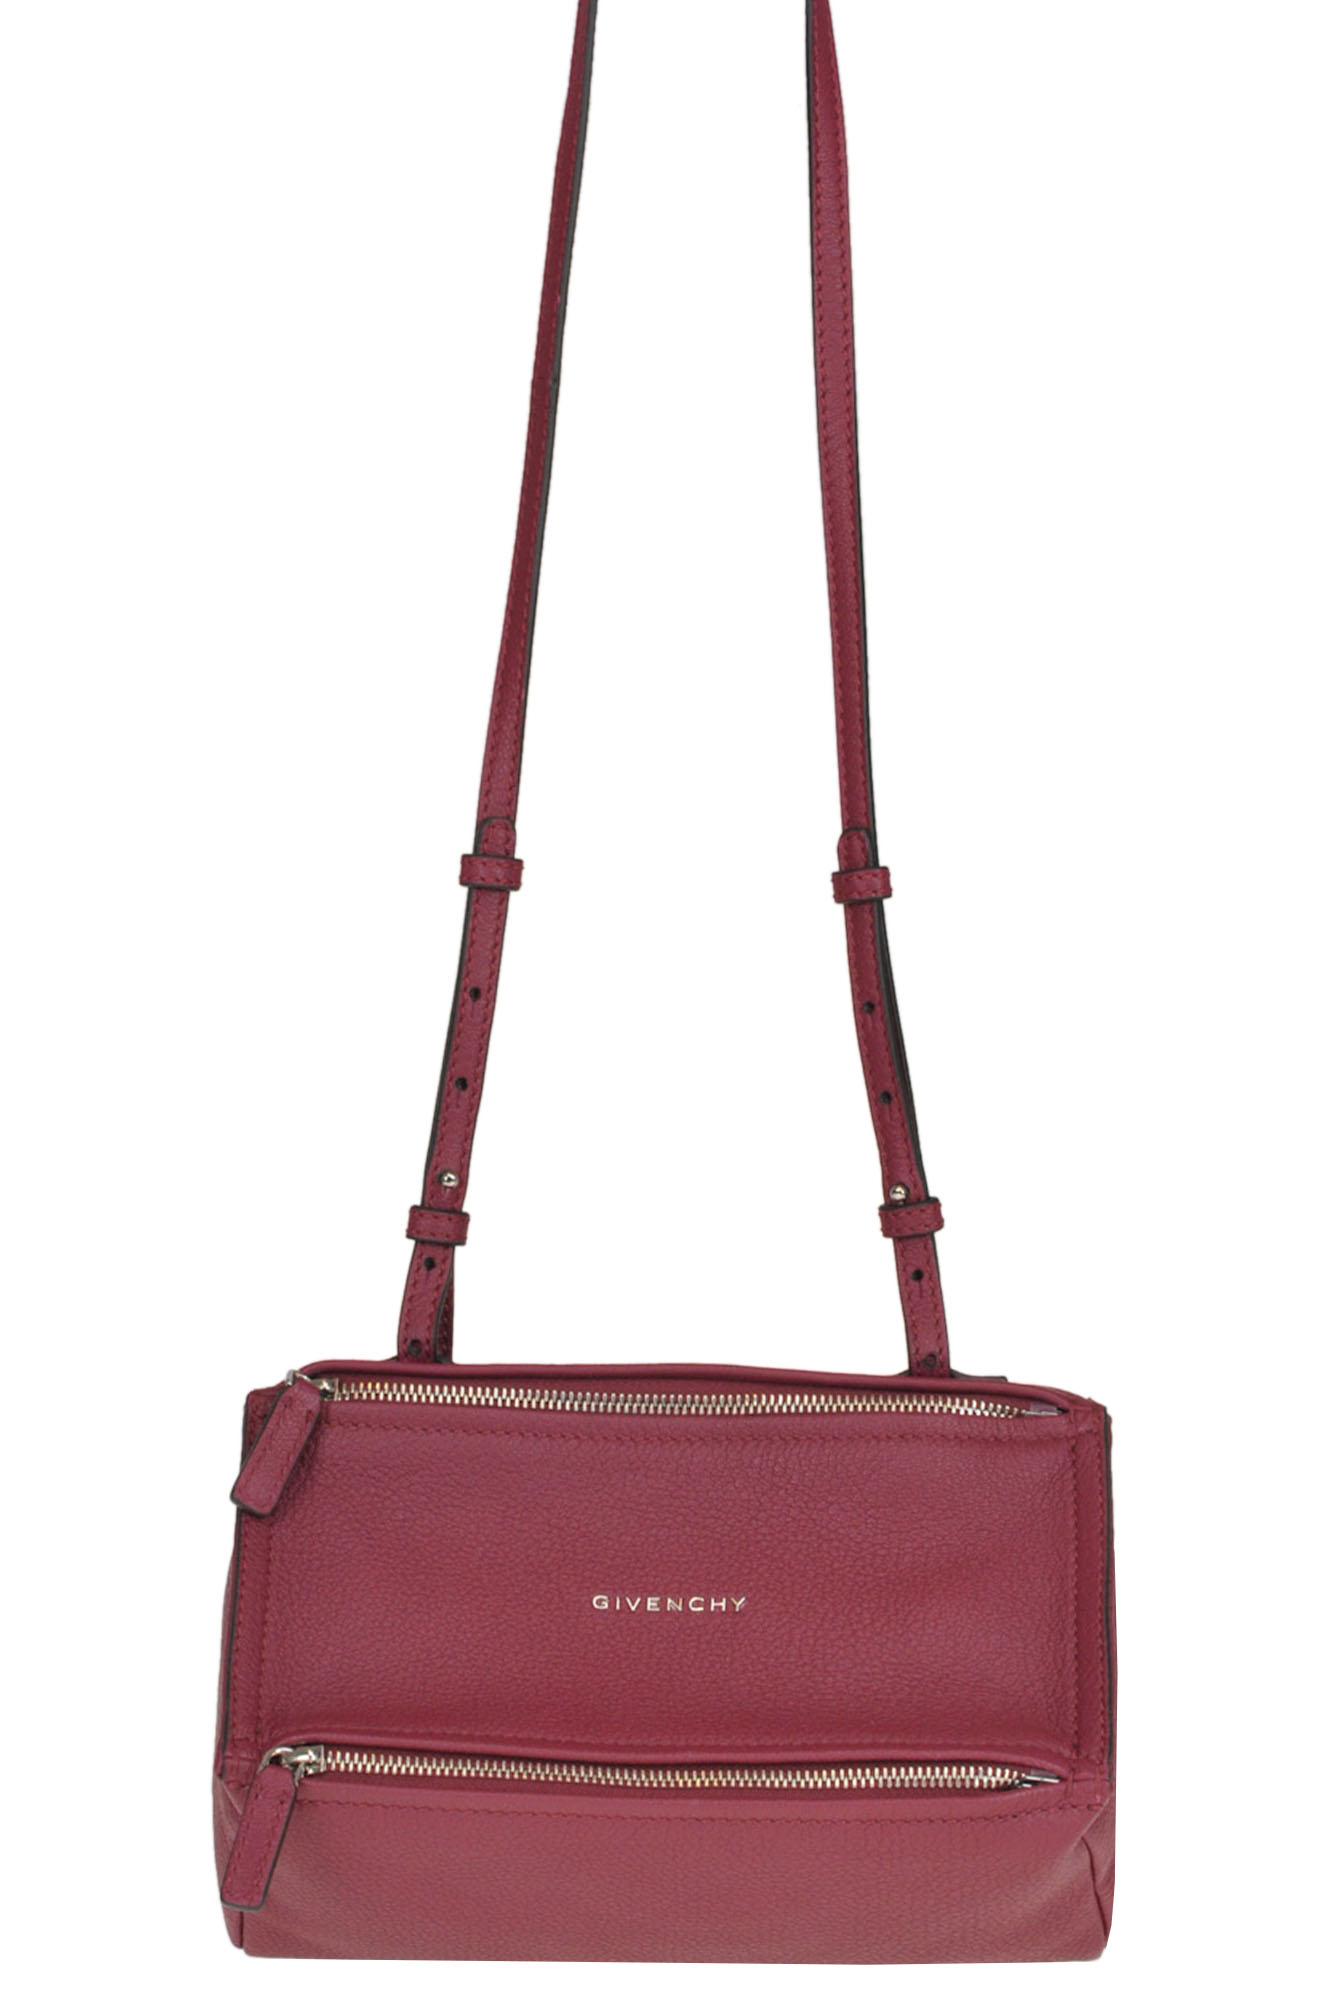 Givenchy Pandora Grainy Leather Bag In Raspberry